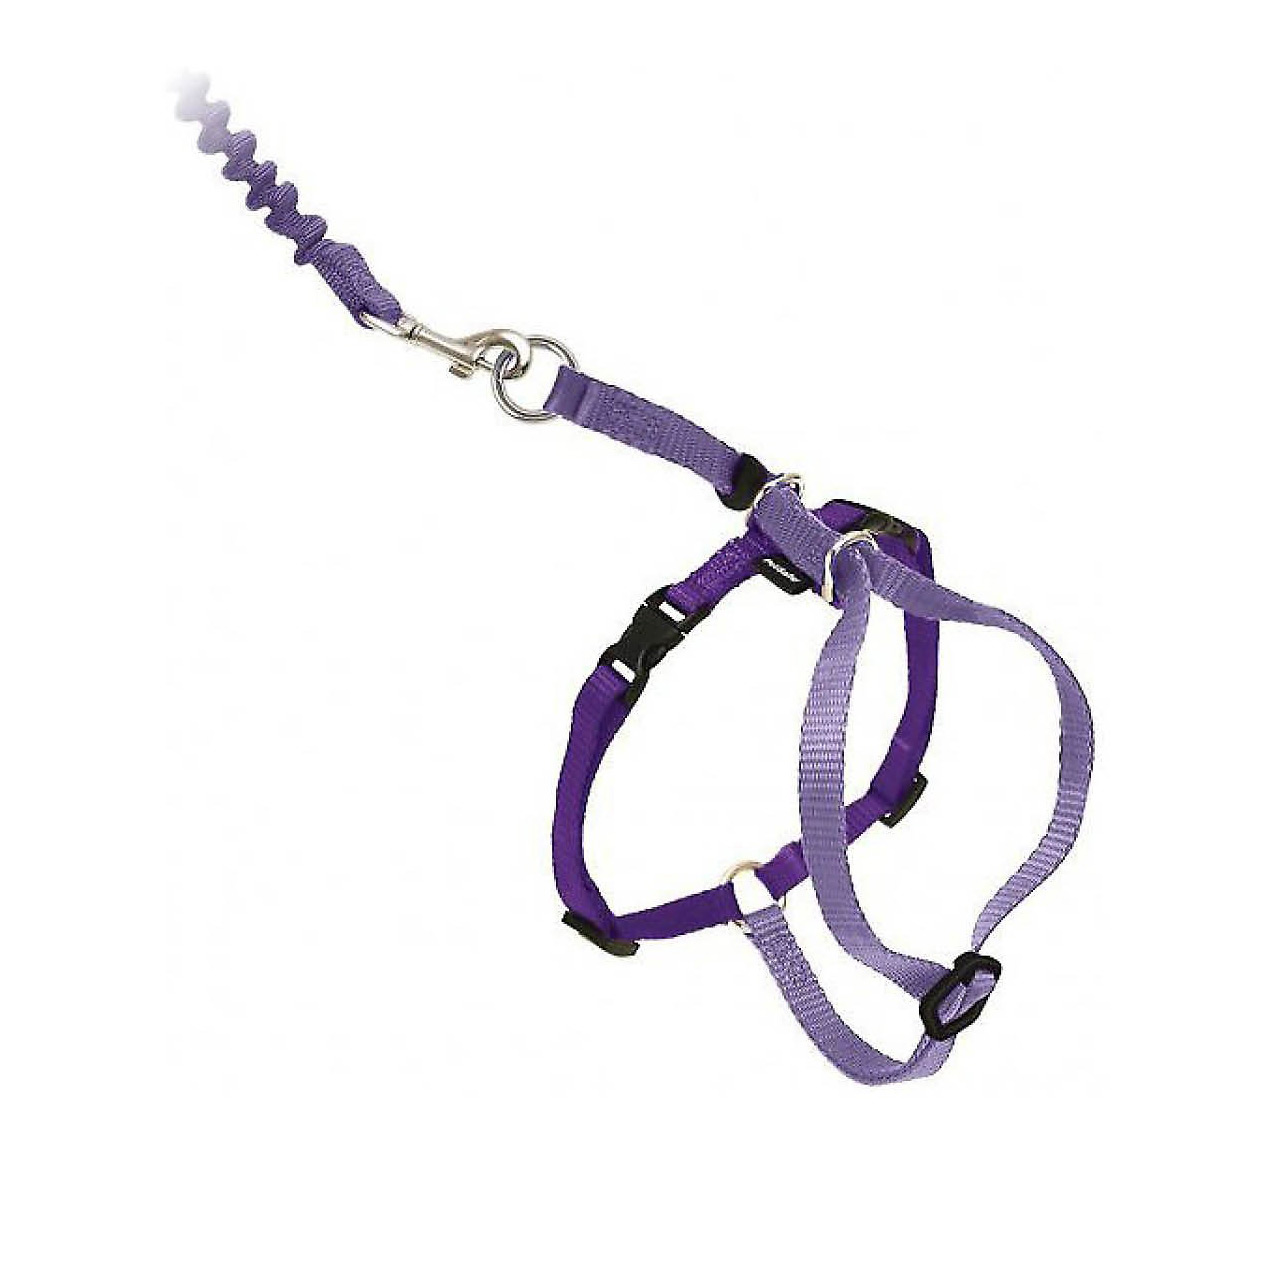 petsafe-come-with-me-kitty-nylon-cat-harness-and-leash